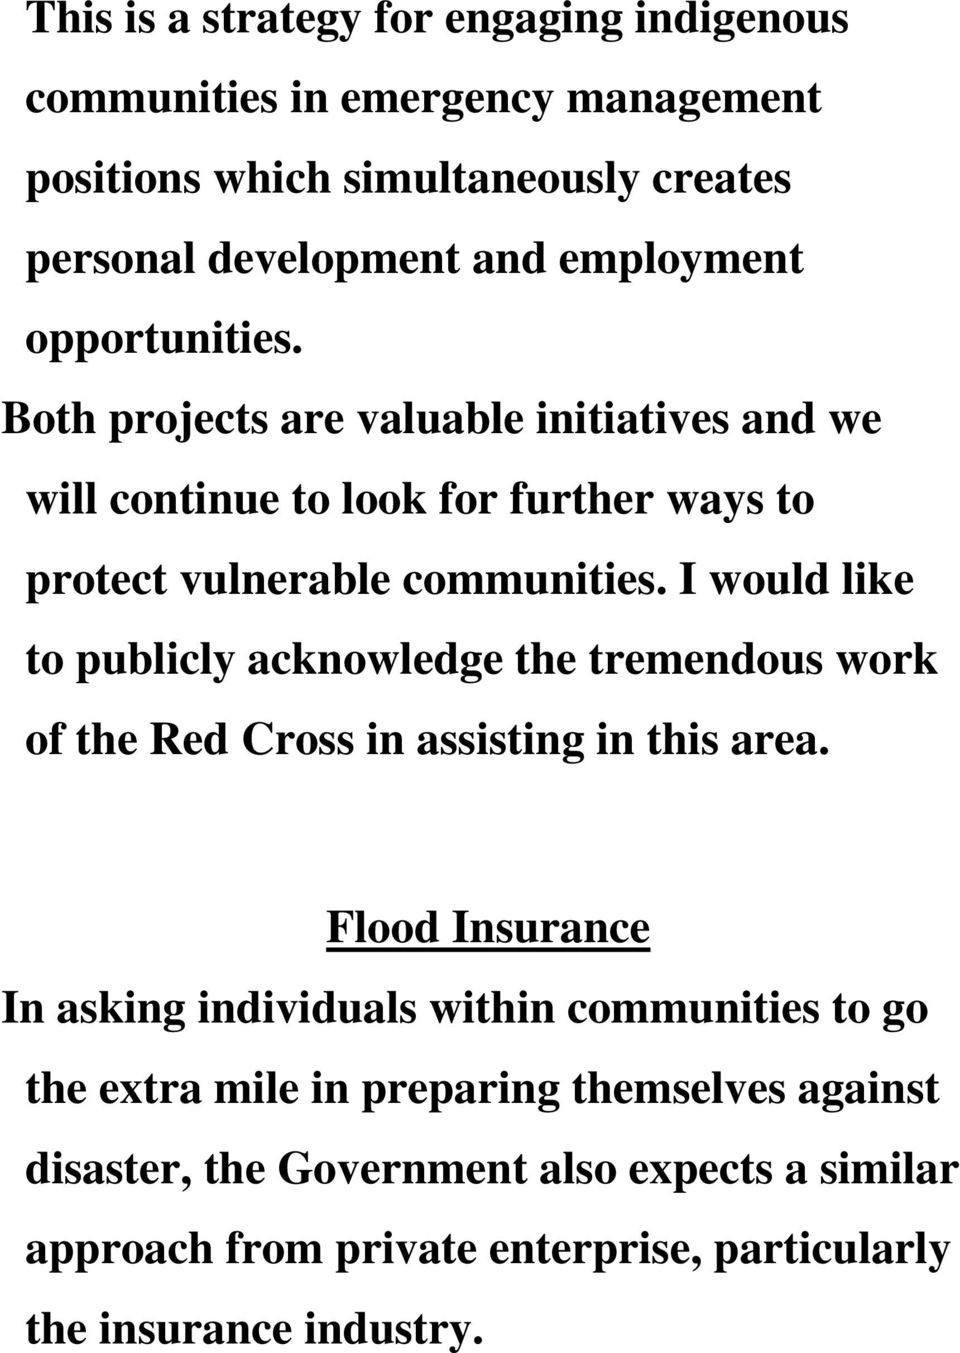 I would like to publicly acknowledge the tremendous work of the Red Cross in assisting in this area.